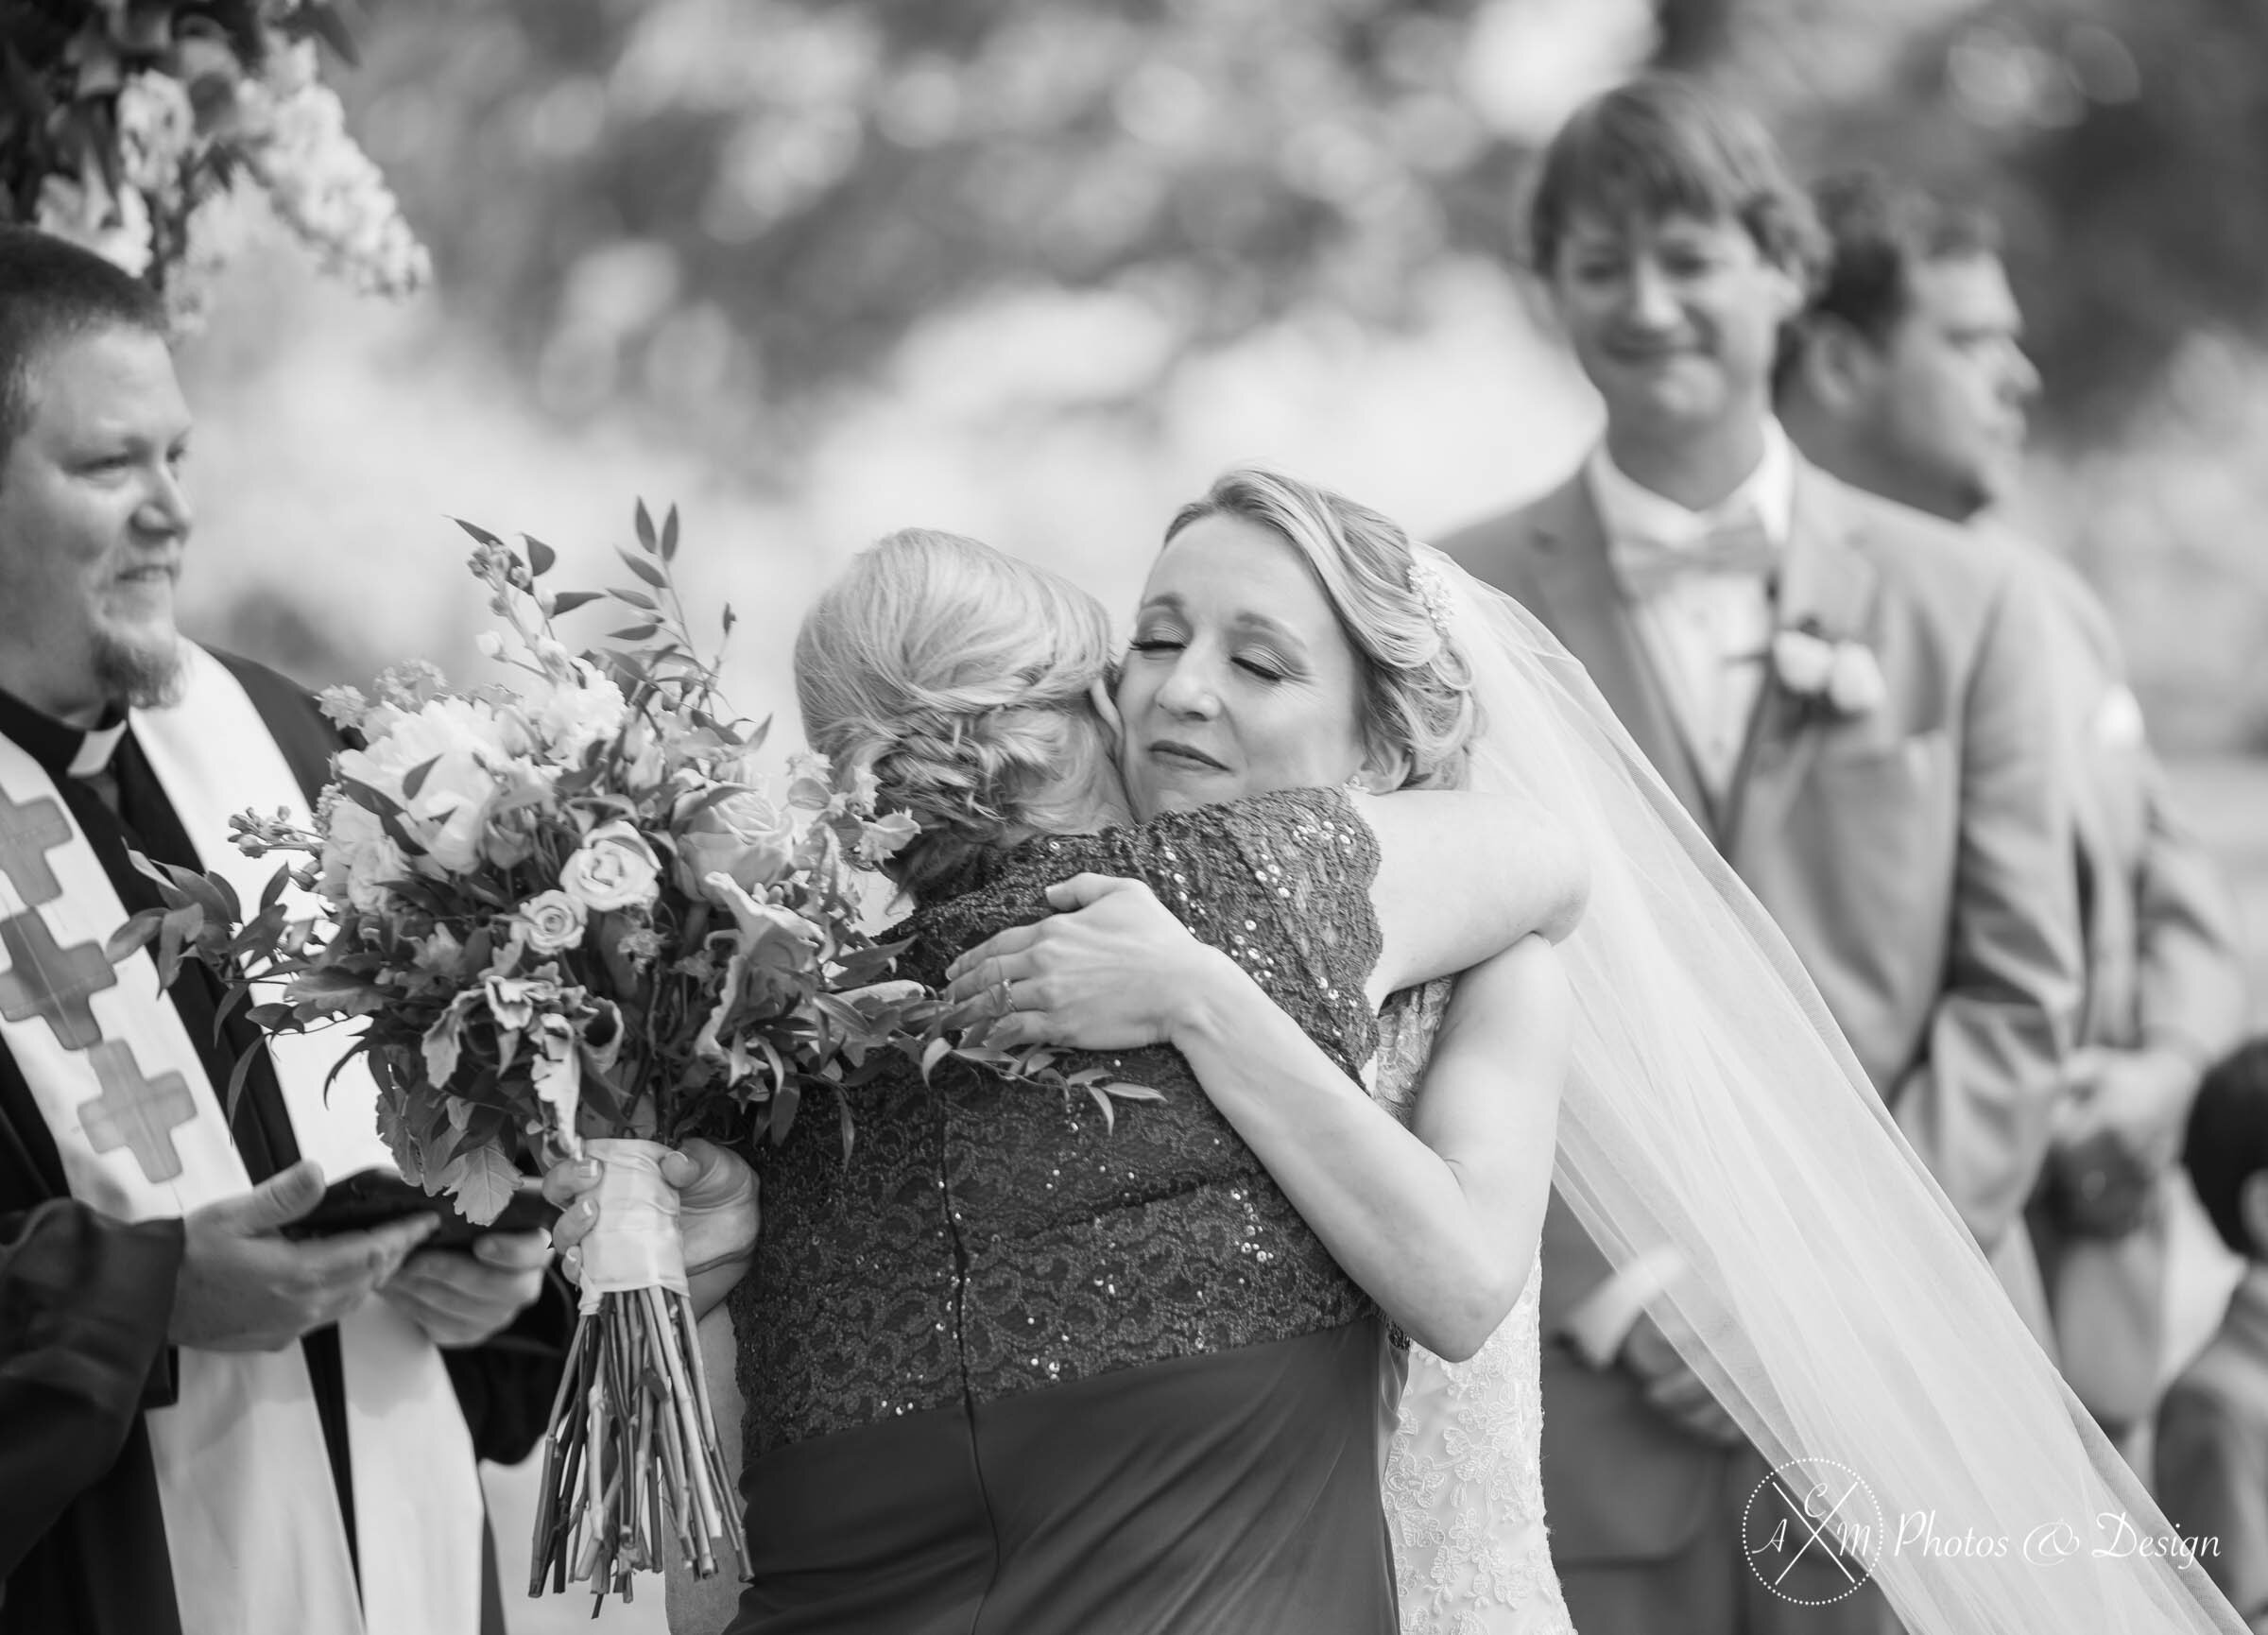 Beautiful moment of one of our bride's and her mom after they walked down the aisle. Utilizing camera settings only, we were able to properly expose this photo while not being too intrusive during the ceremony.